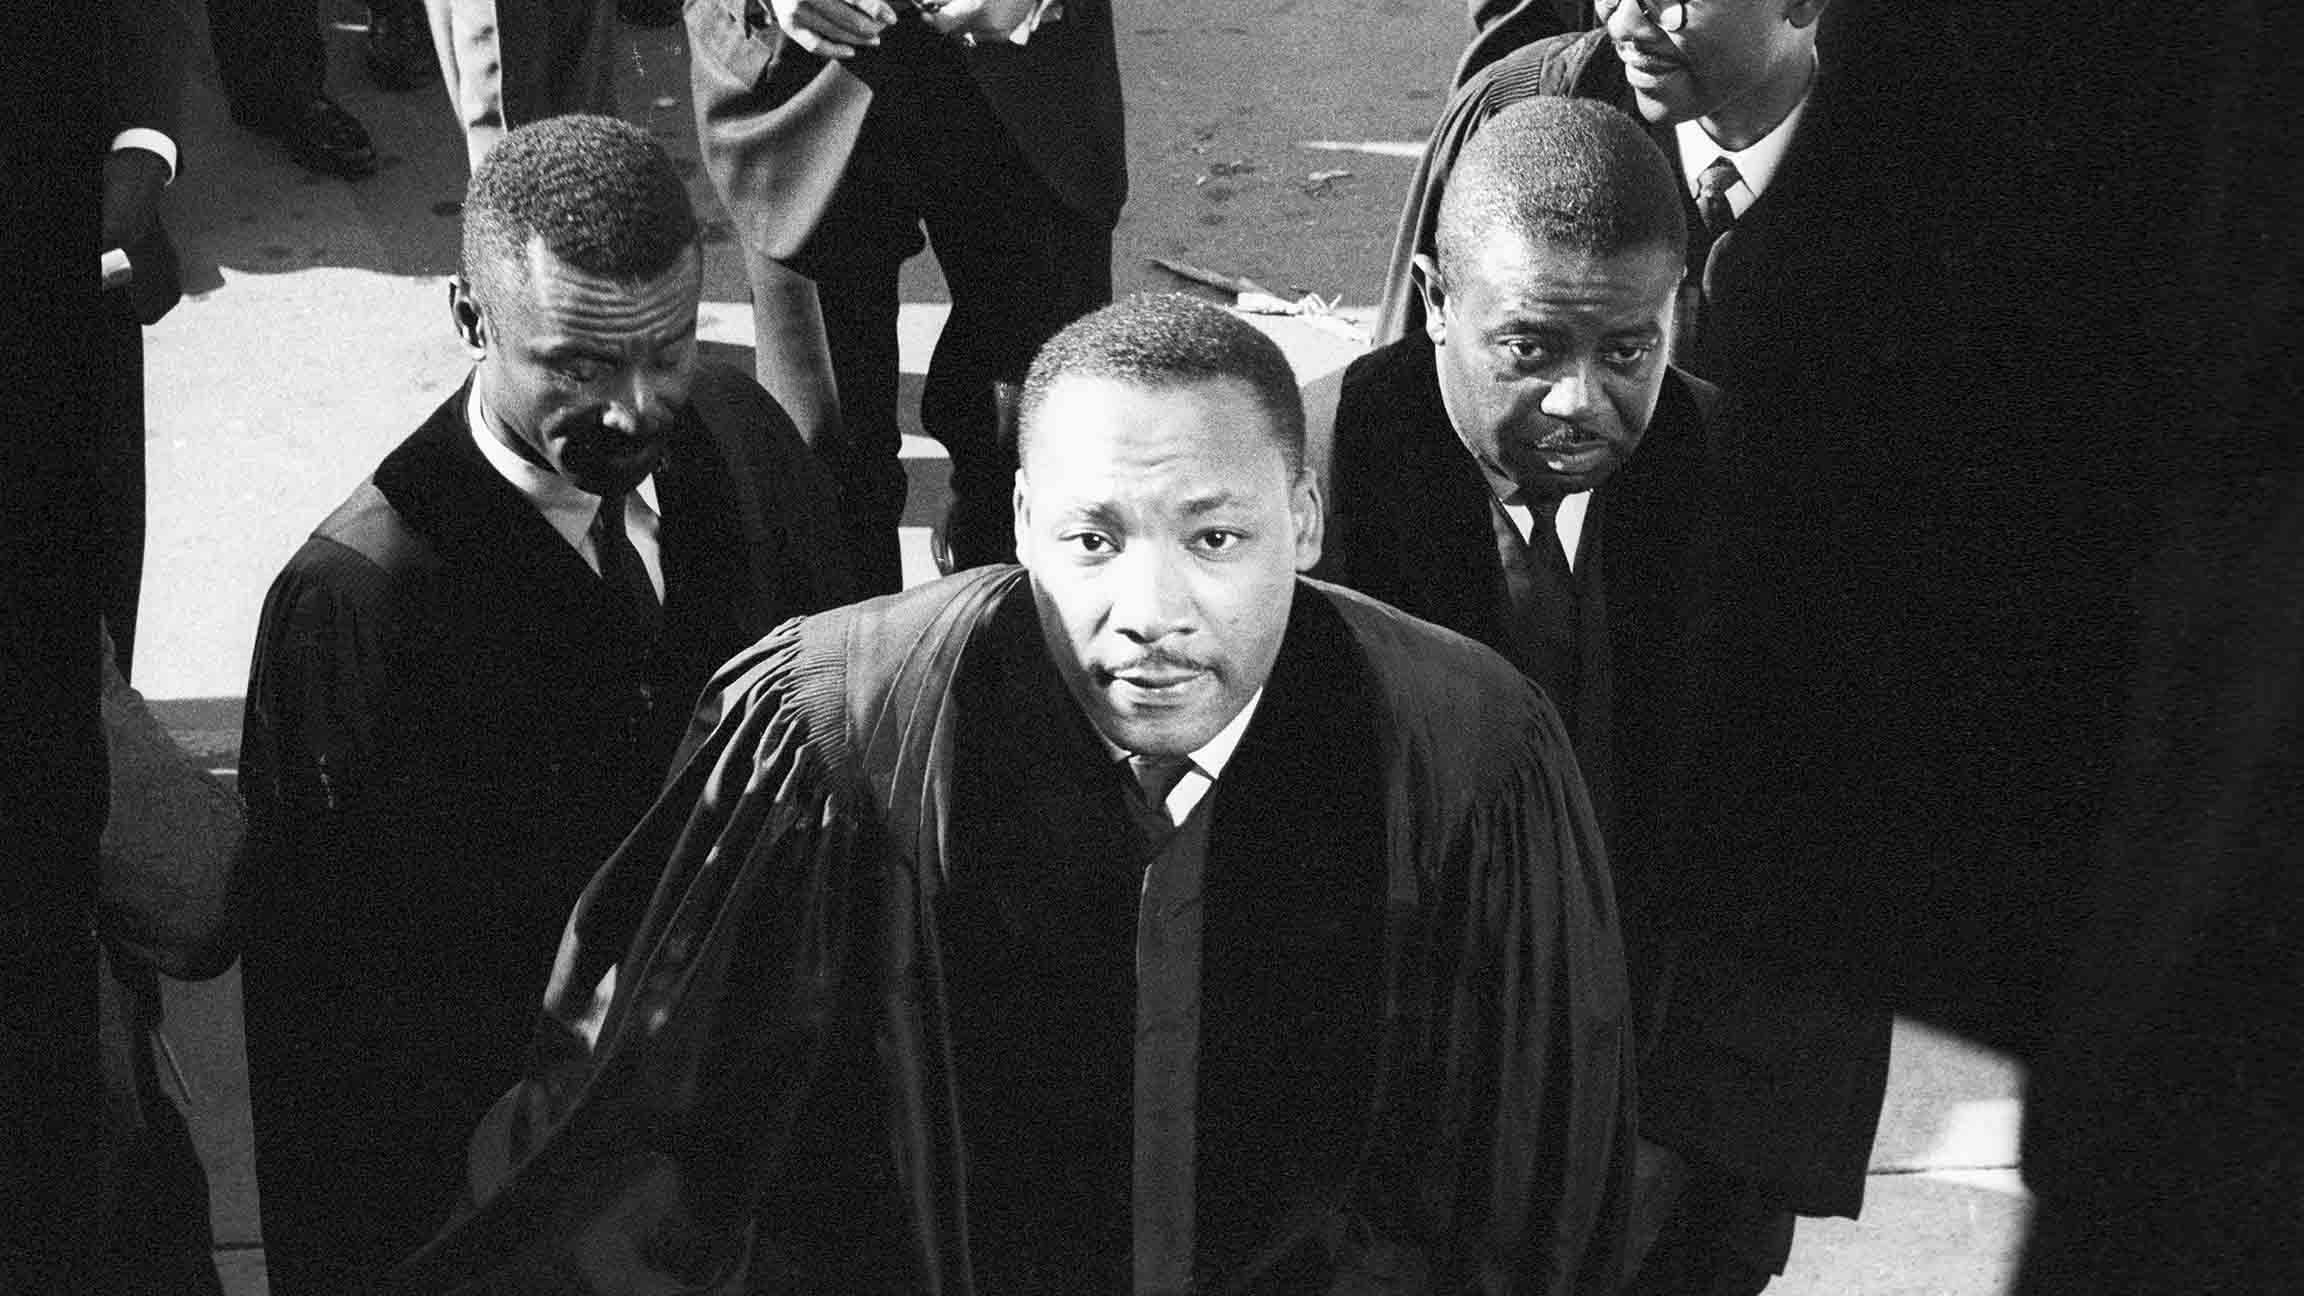 Civil Rights leaders Fred Shuttlesworth, left, Martin Luther King Jr., center, and Ralph Abernathy, right, attend a funeral for victims of the 16th Street Church bombing in Birmingham, Alabama. The Sept. 15, 1963 bombing killed four young African-American girls. (Chicago History Museum)